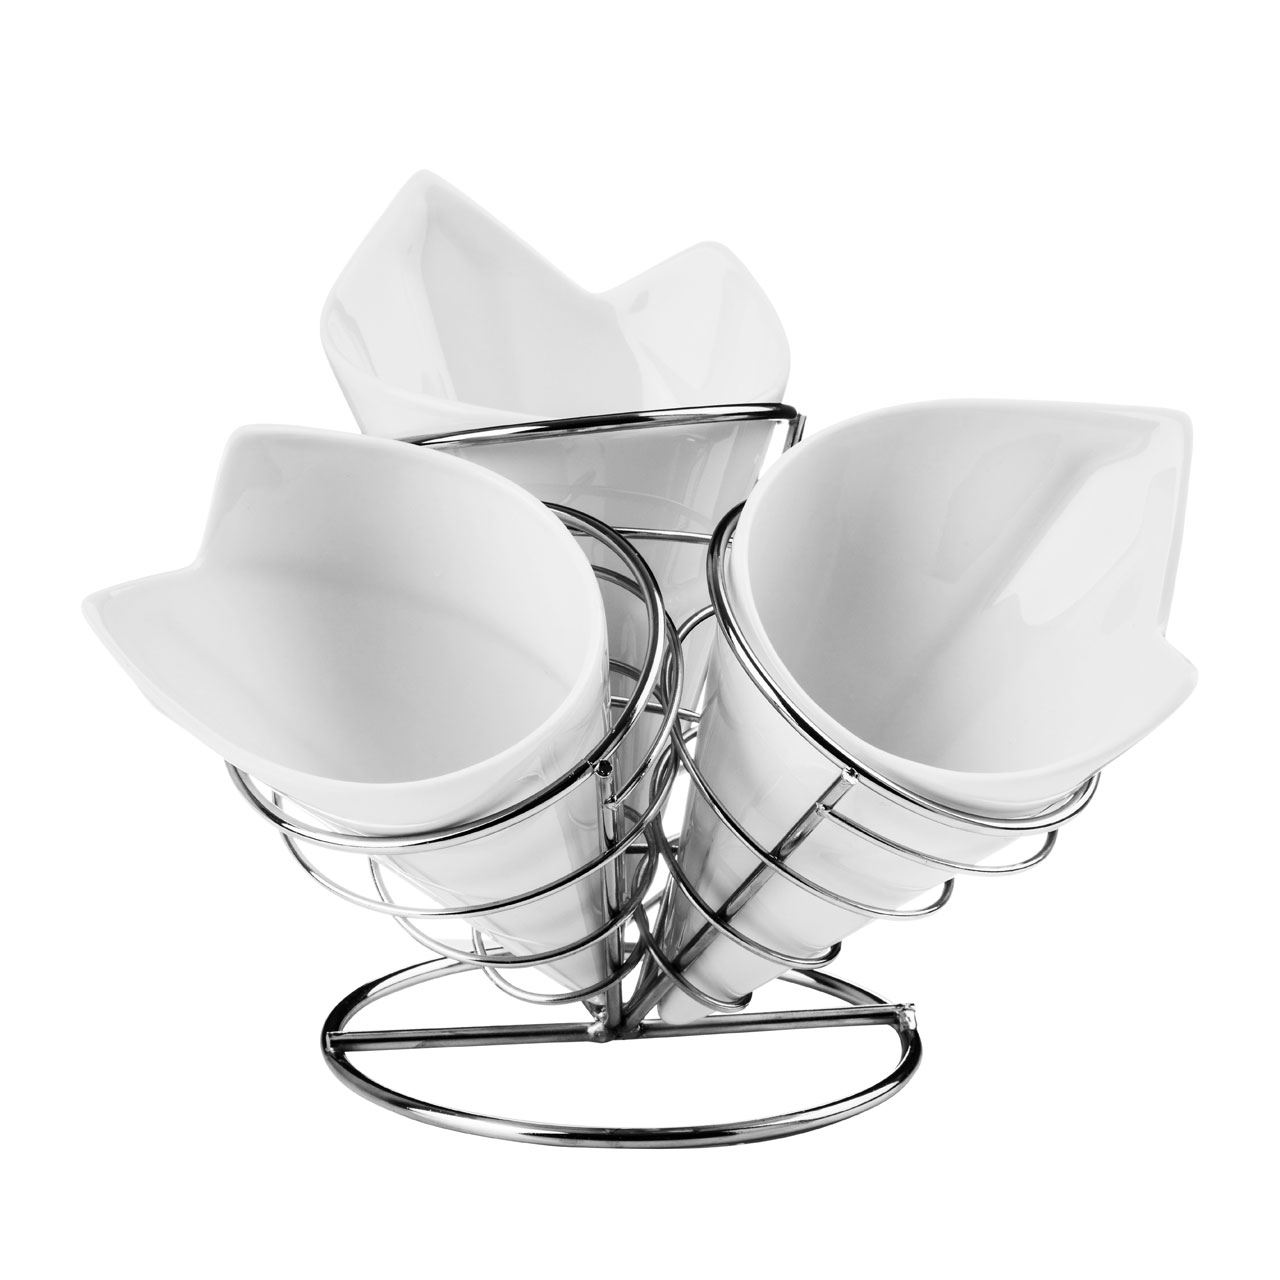 French Fry Cone Set,3 White Porcelain Cones,Chrome Finish Stand